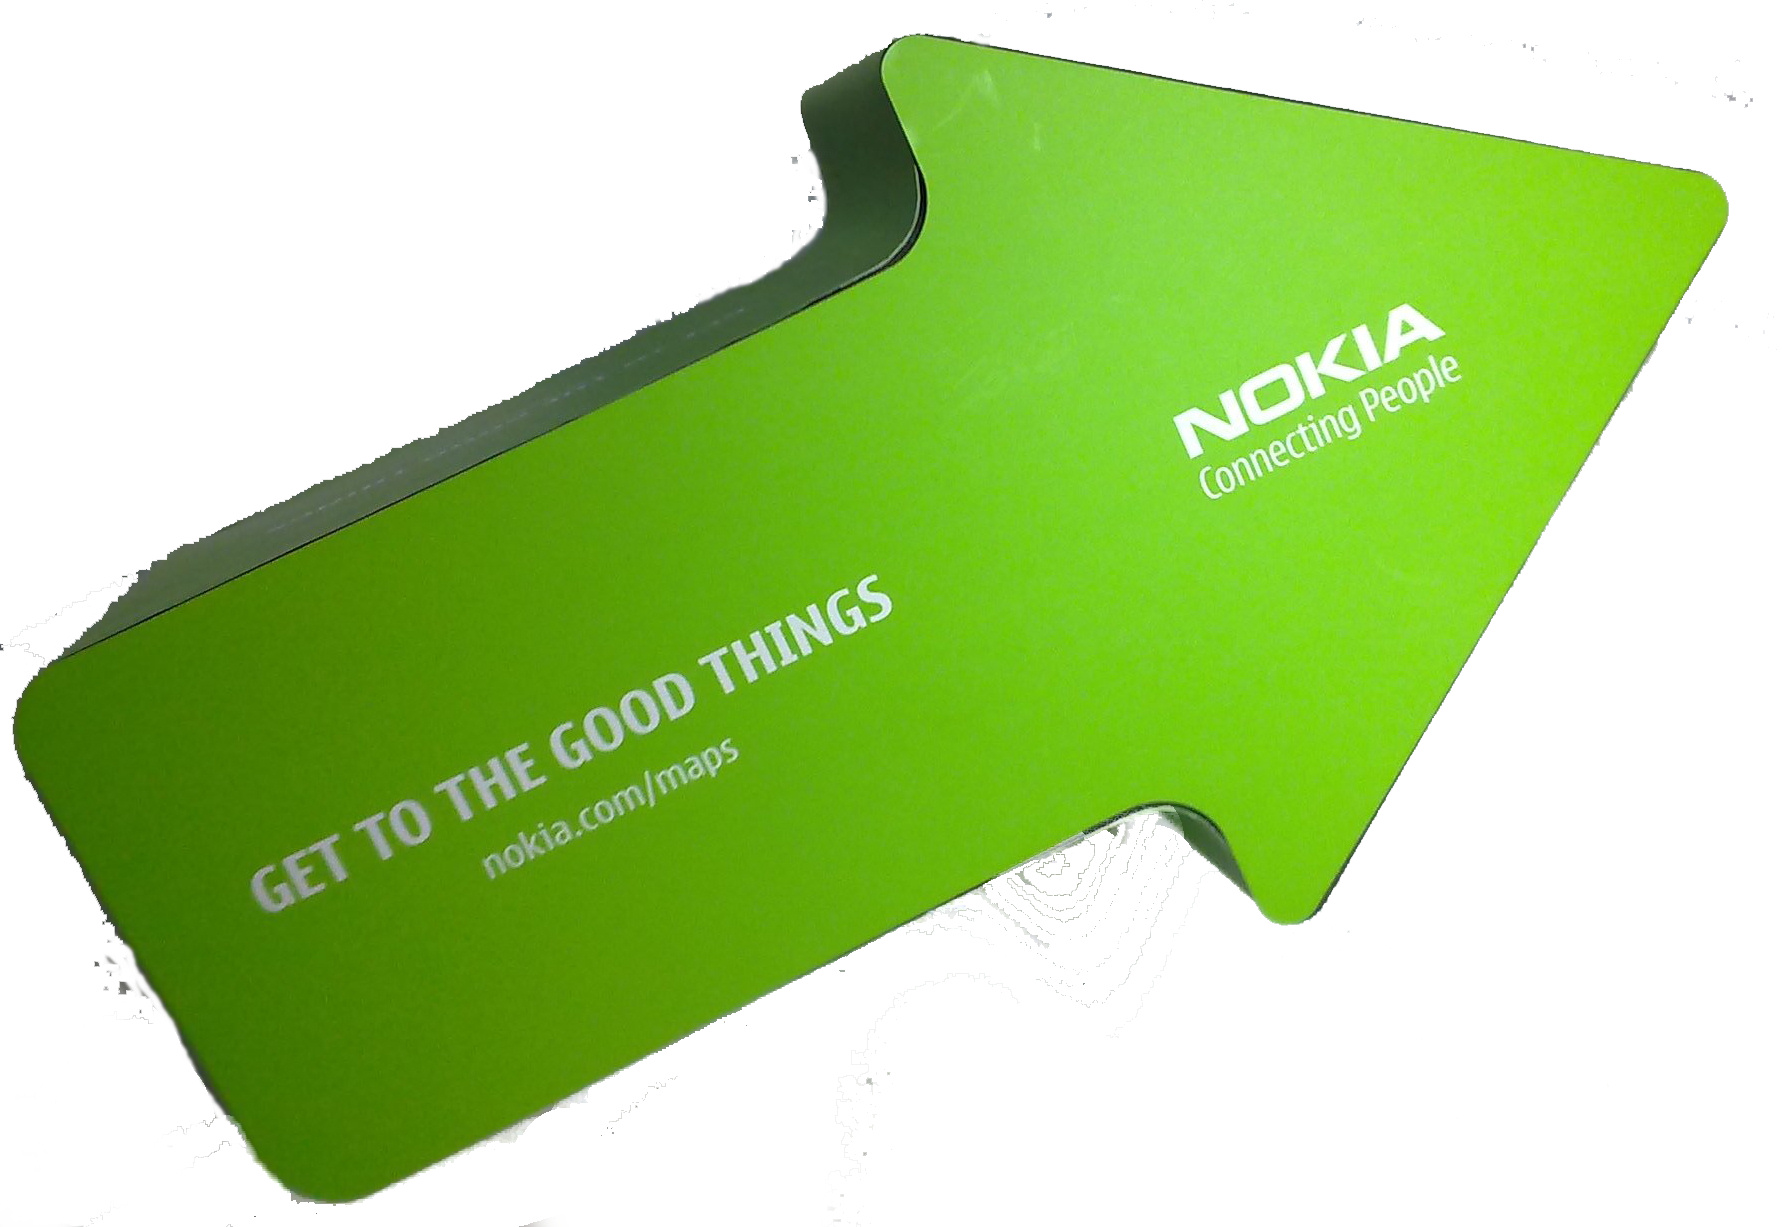 Nokia Event: Good Things starting today!